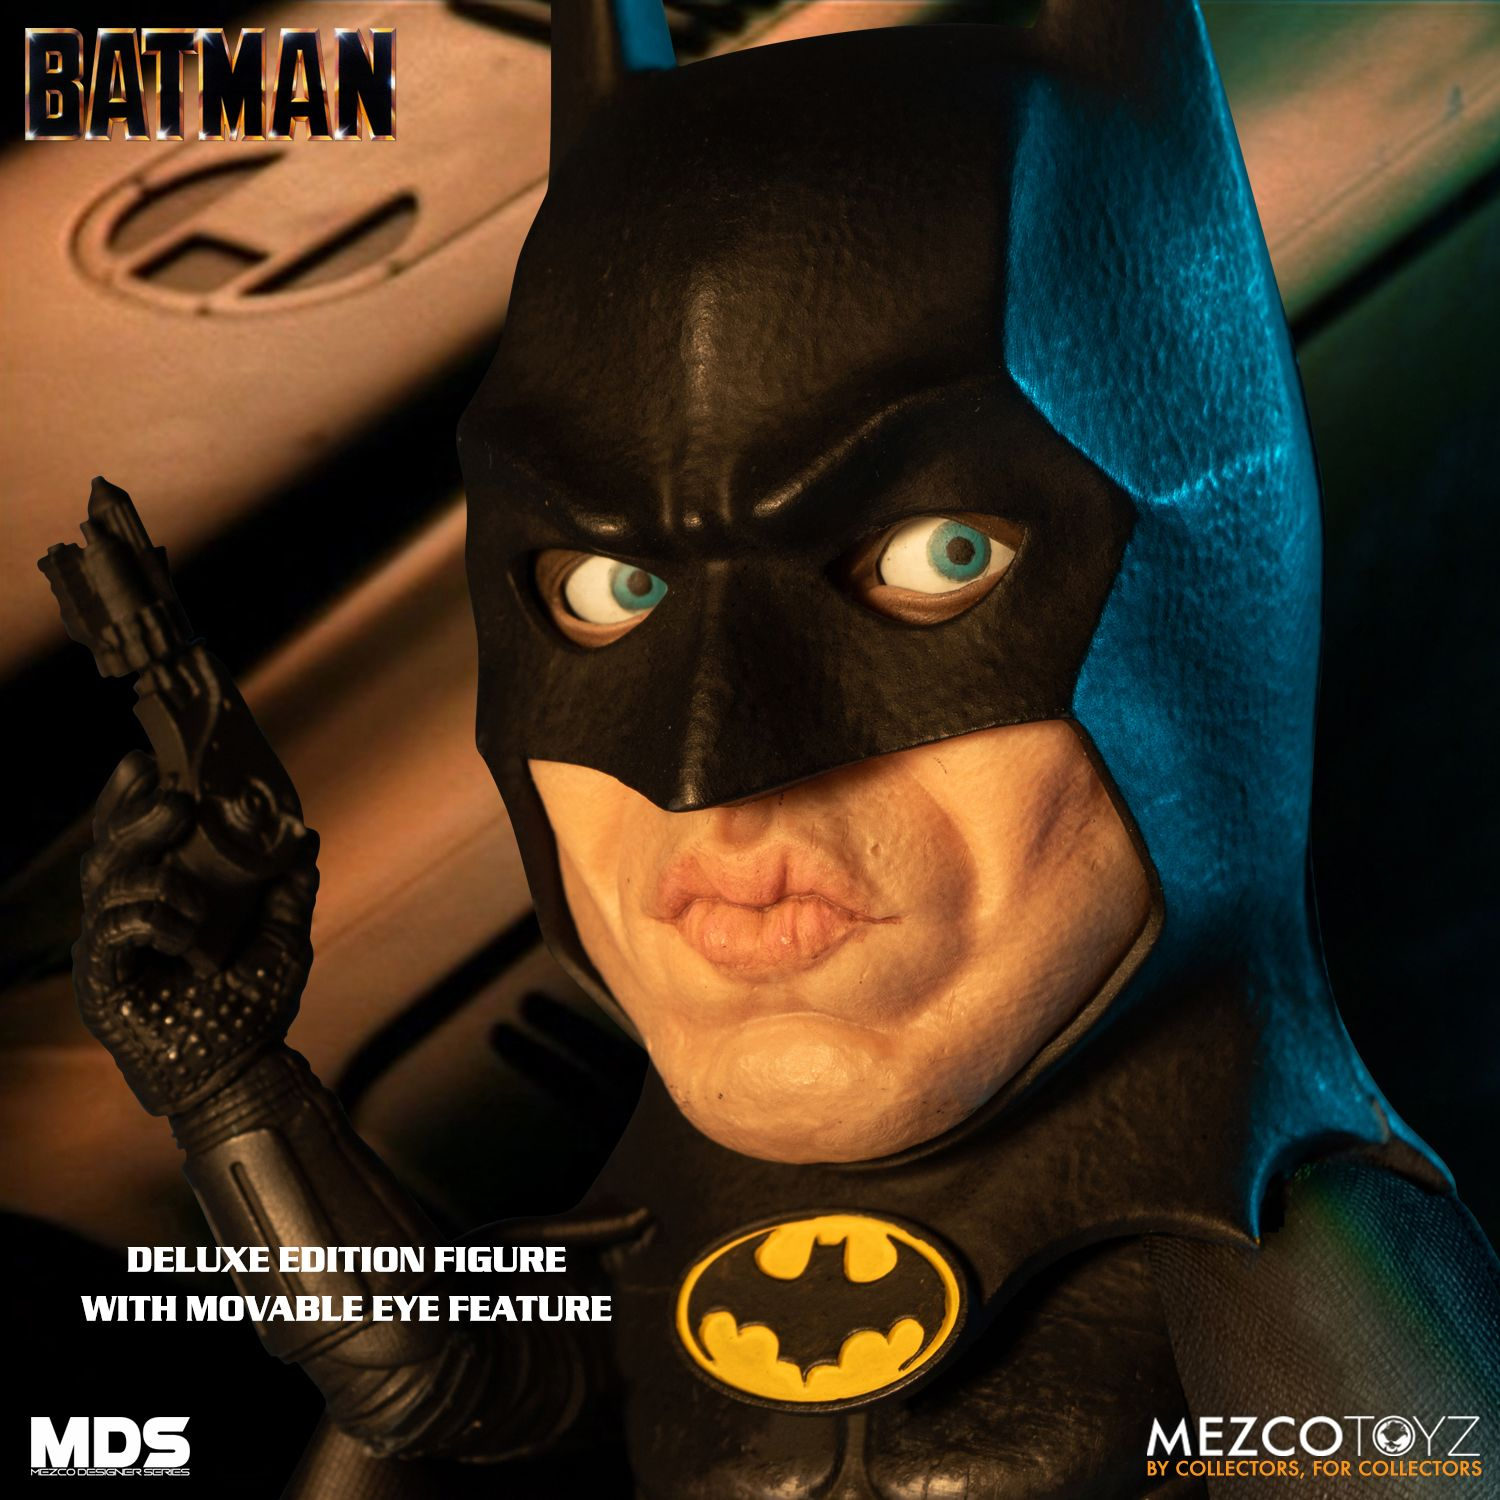 BATMAN '89 Deluxe Action Figure Coming from Mezco Toyz_6